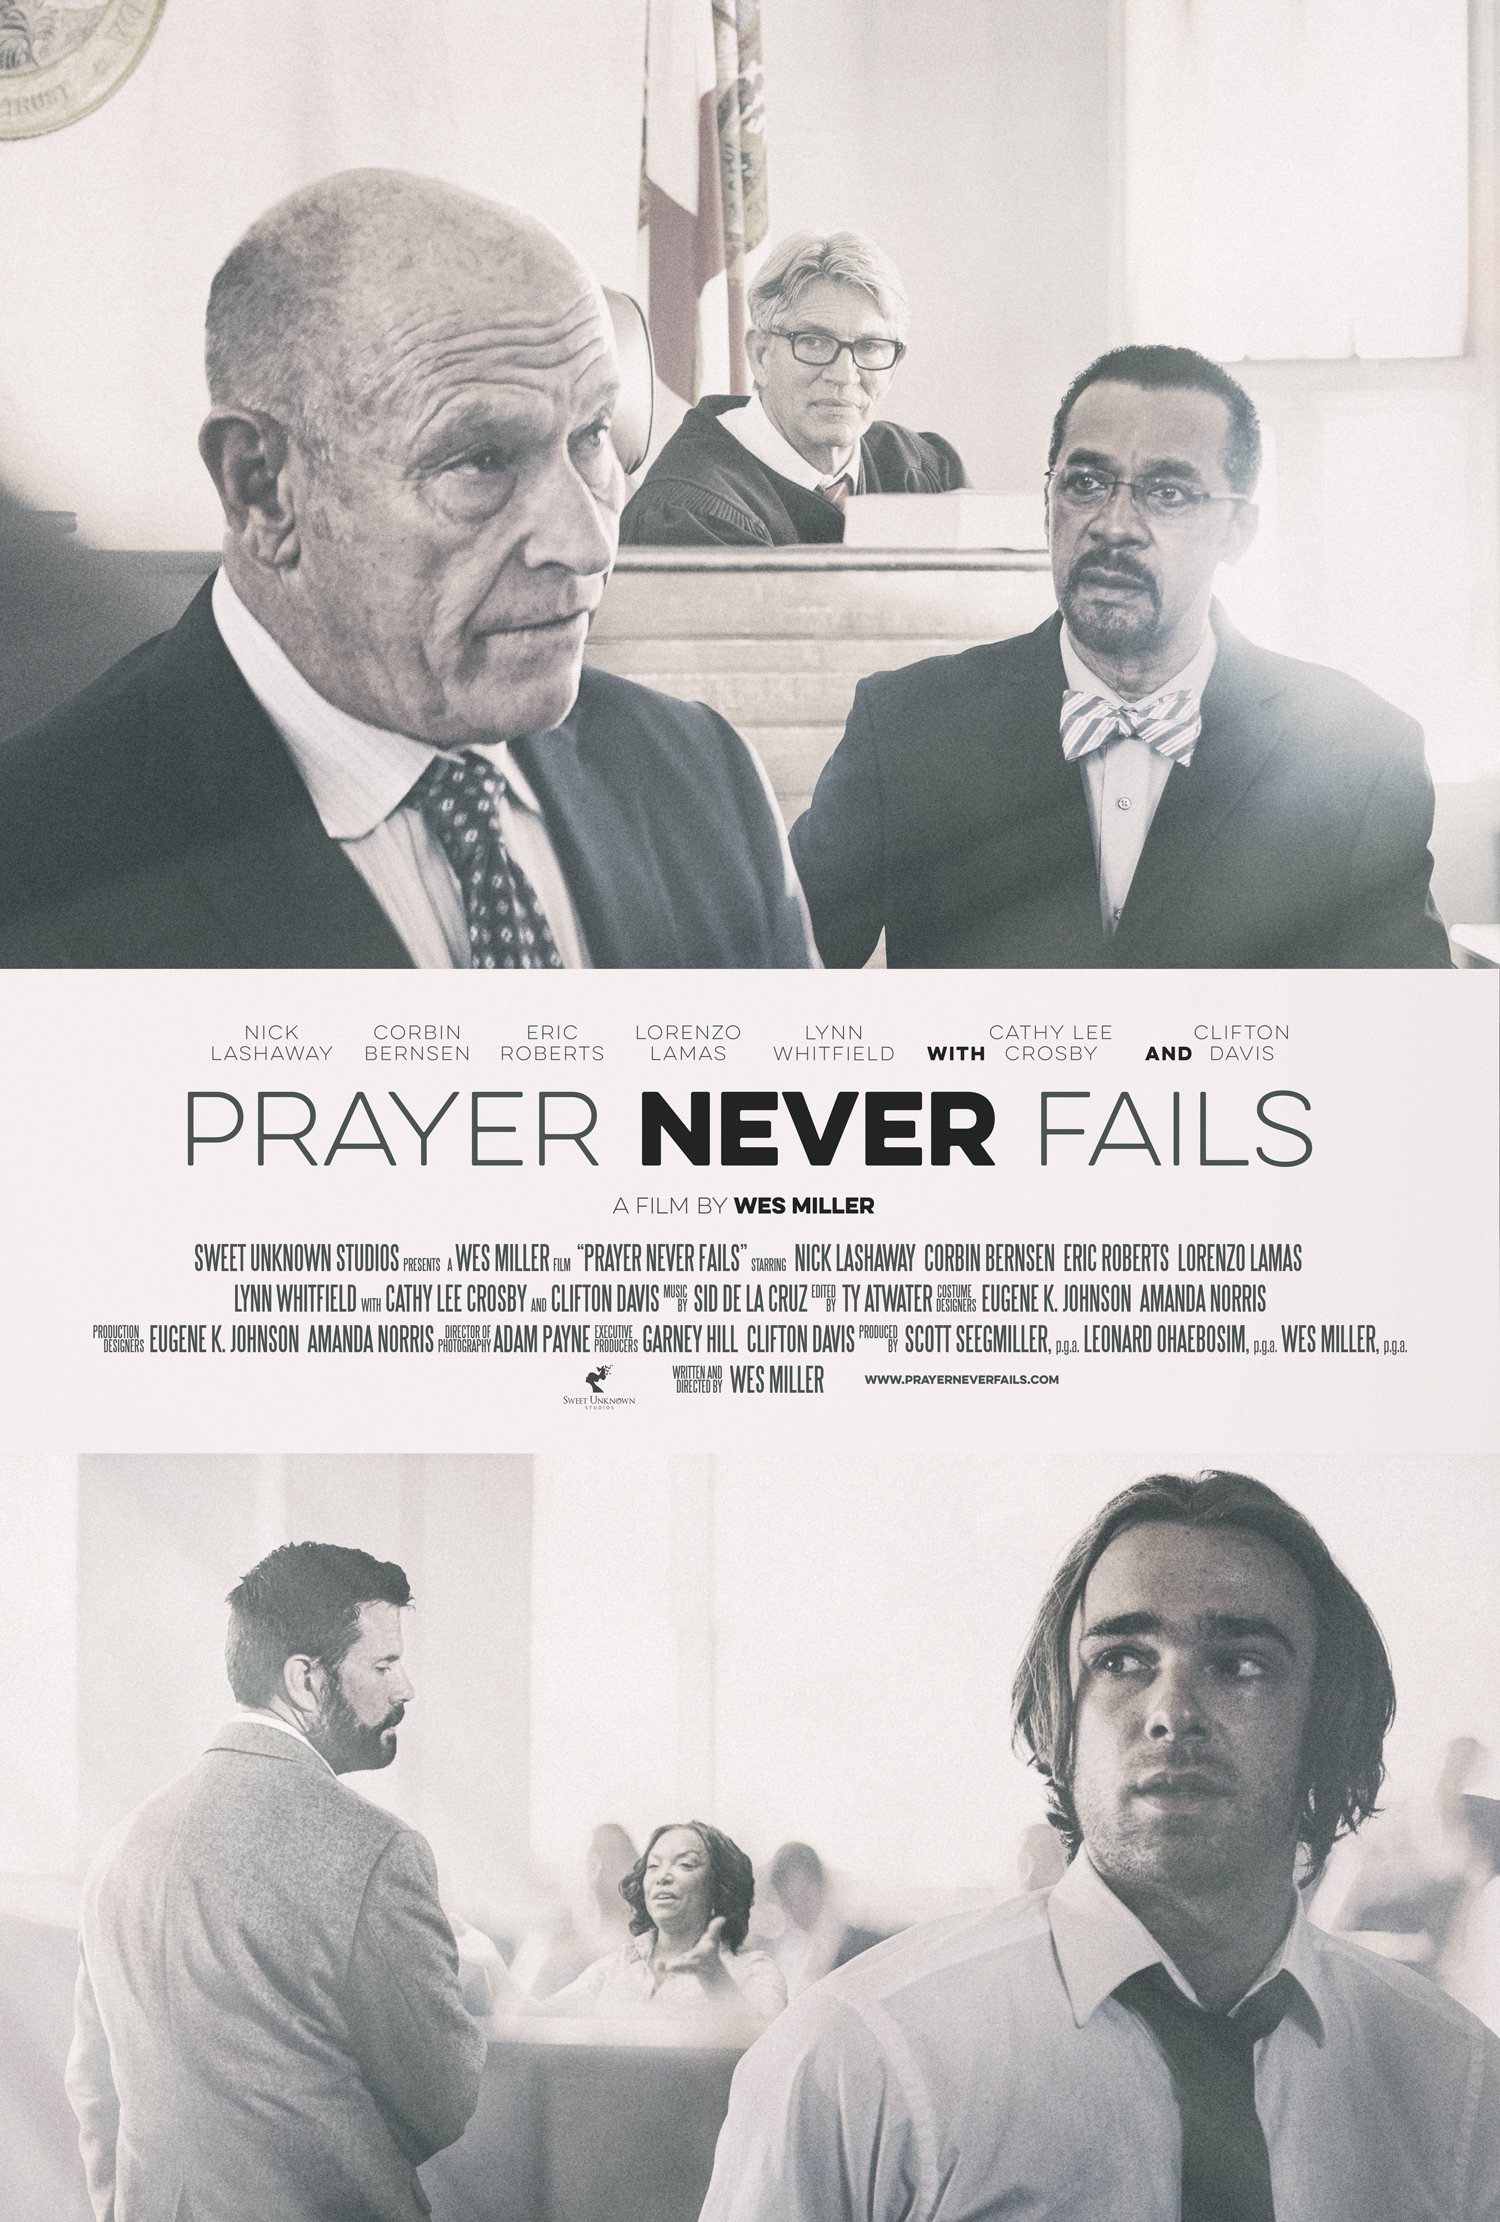 New Family Faith Film 'Prayer Never Fails' Set to Release in